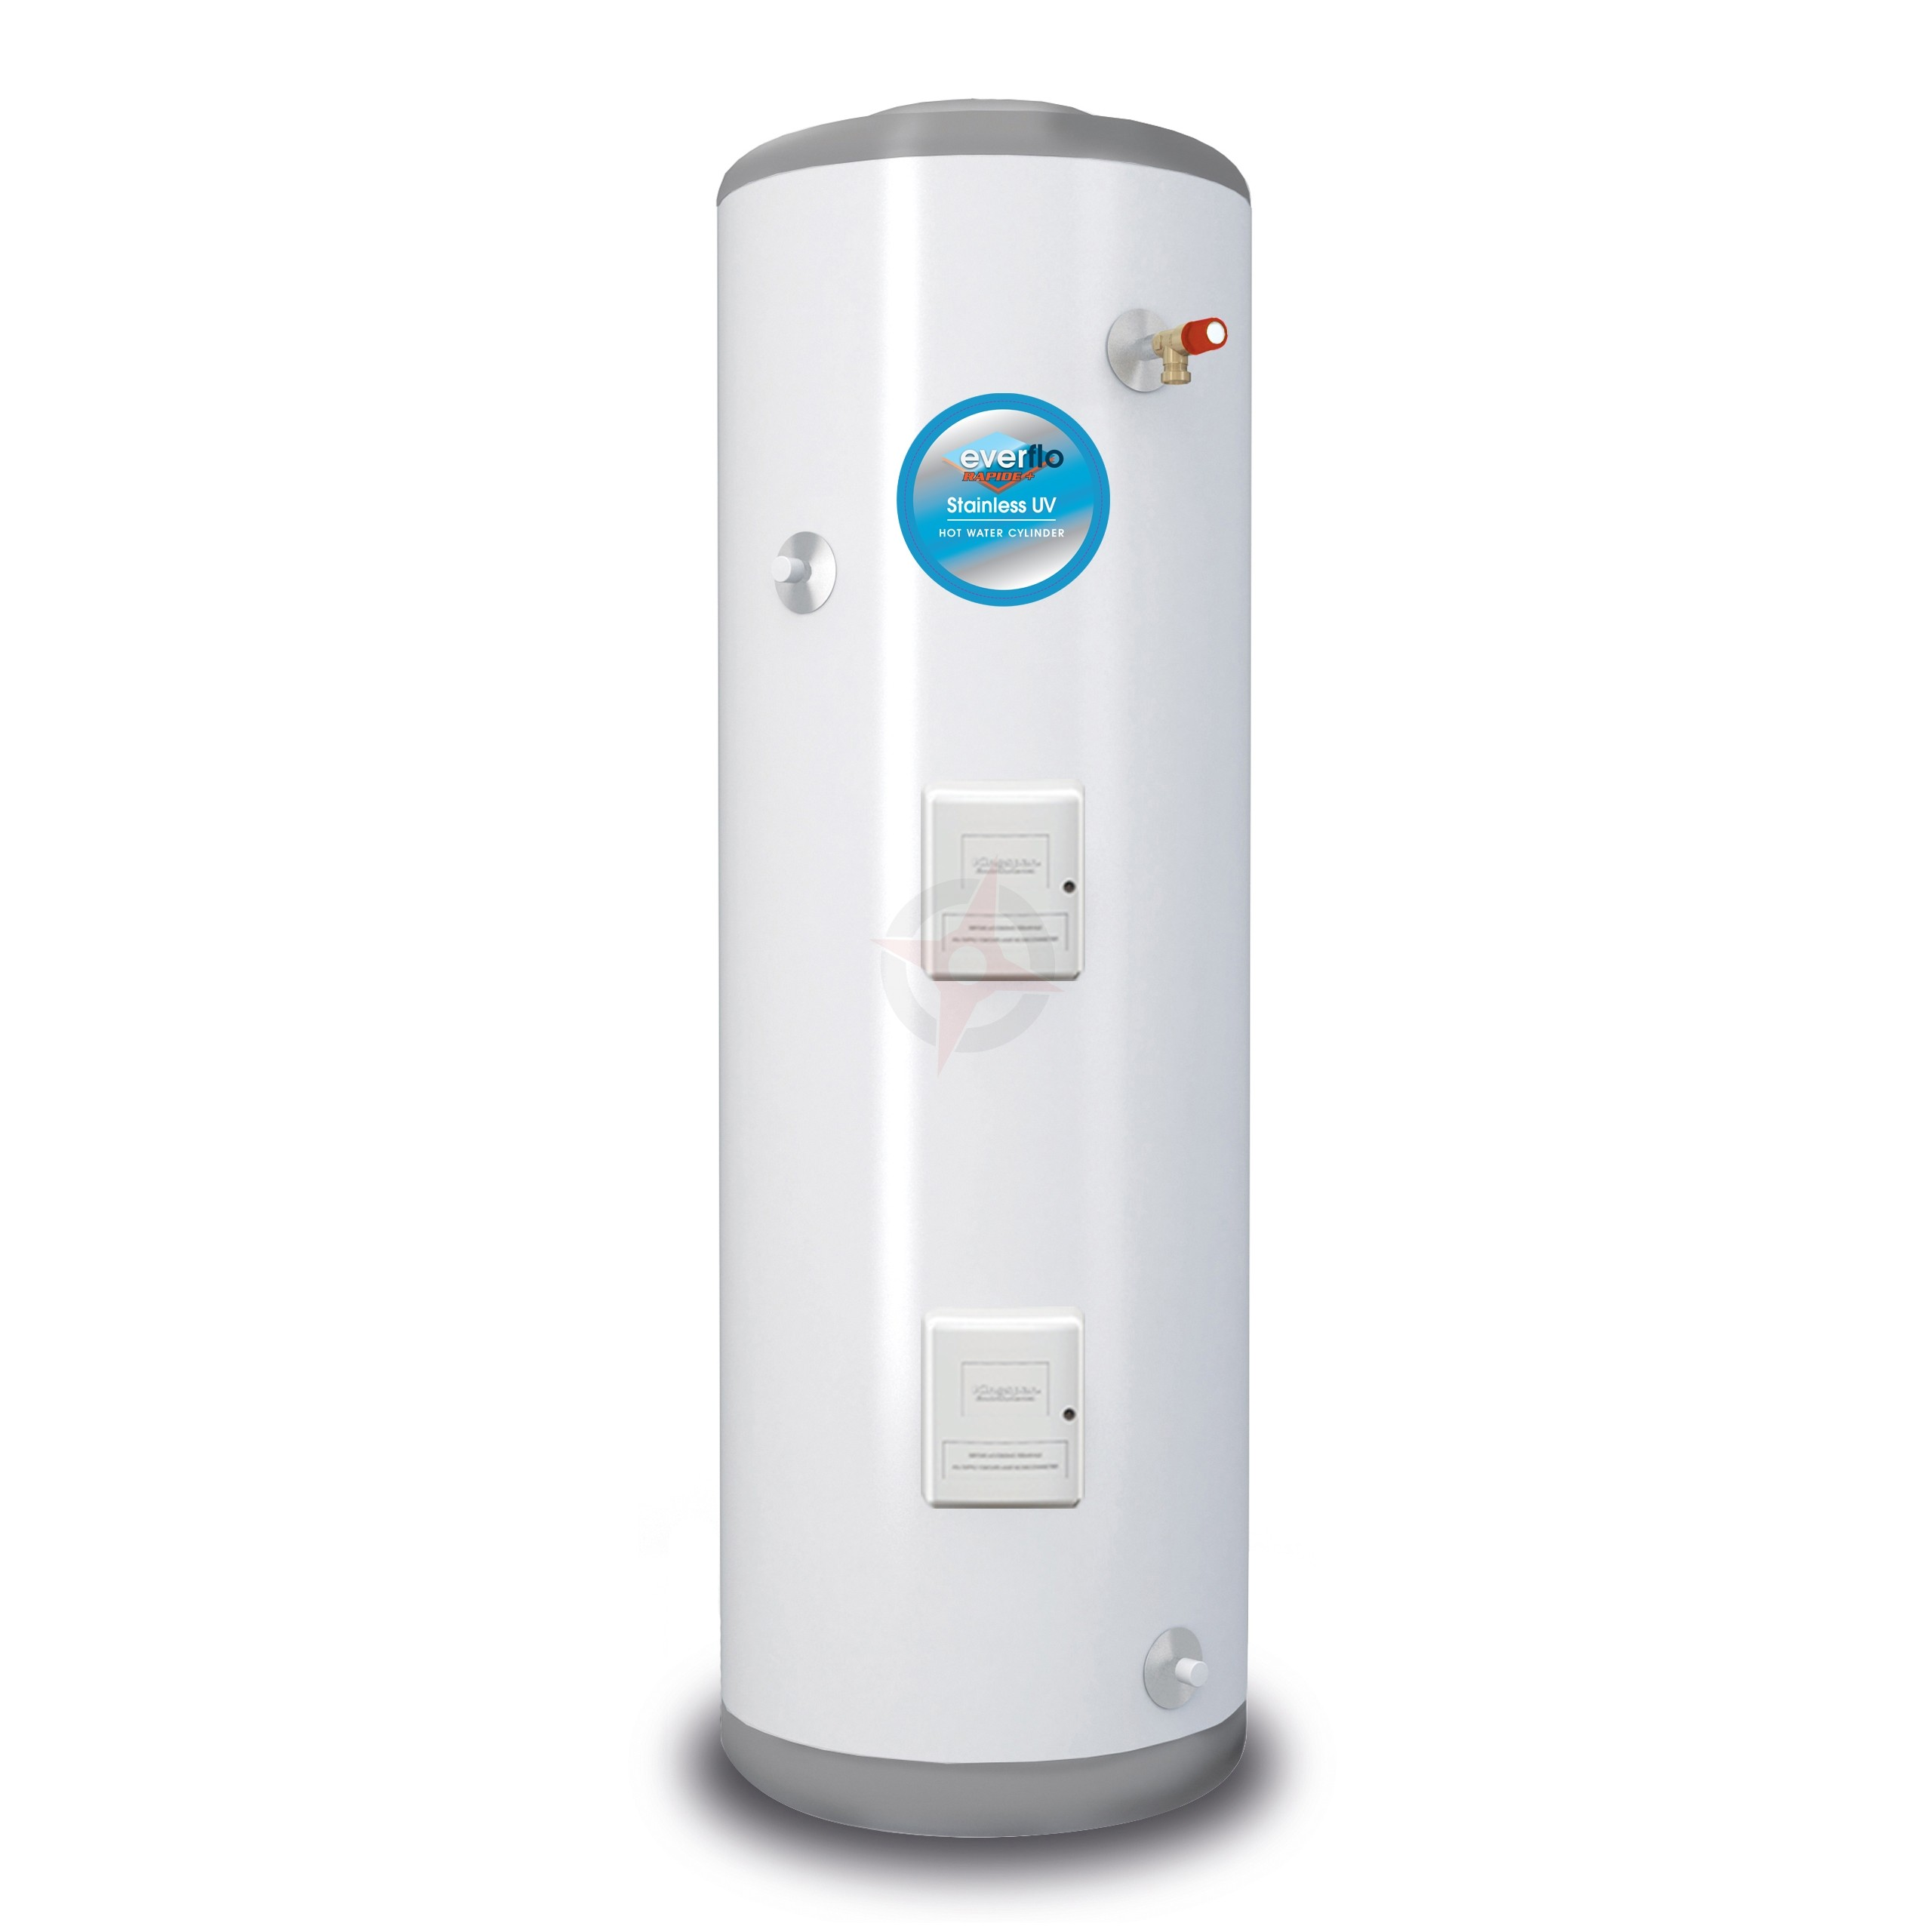 everflo Rapide+ 150L Direct Unvented Hot Water Storage Cylinder & Kit